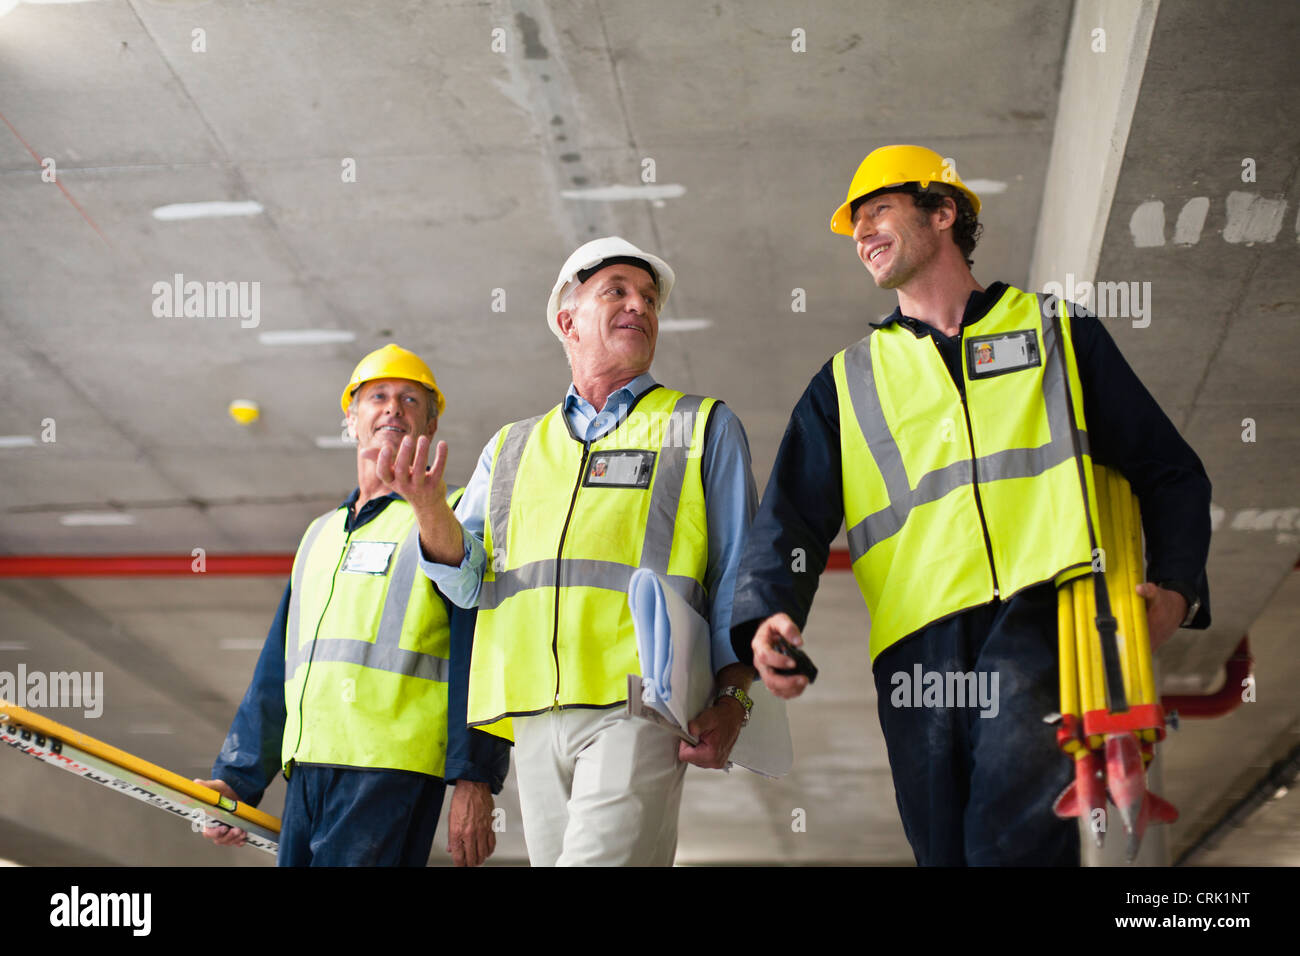 Workers walking at construction site - Stock Image